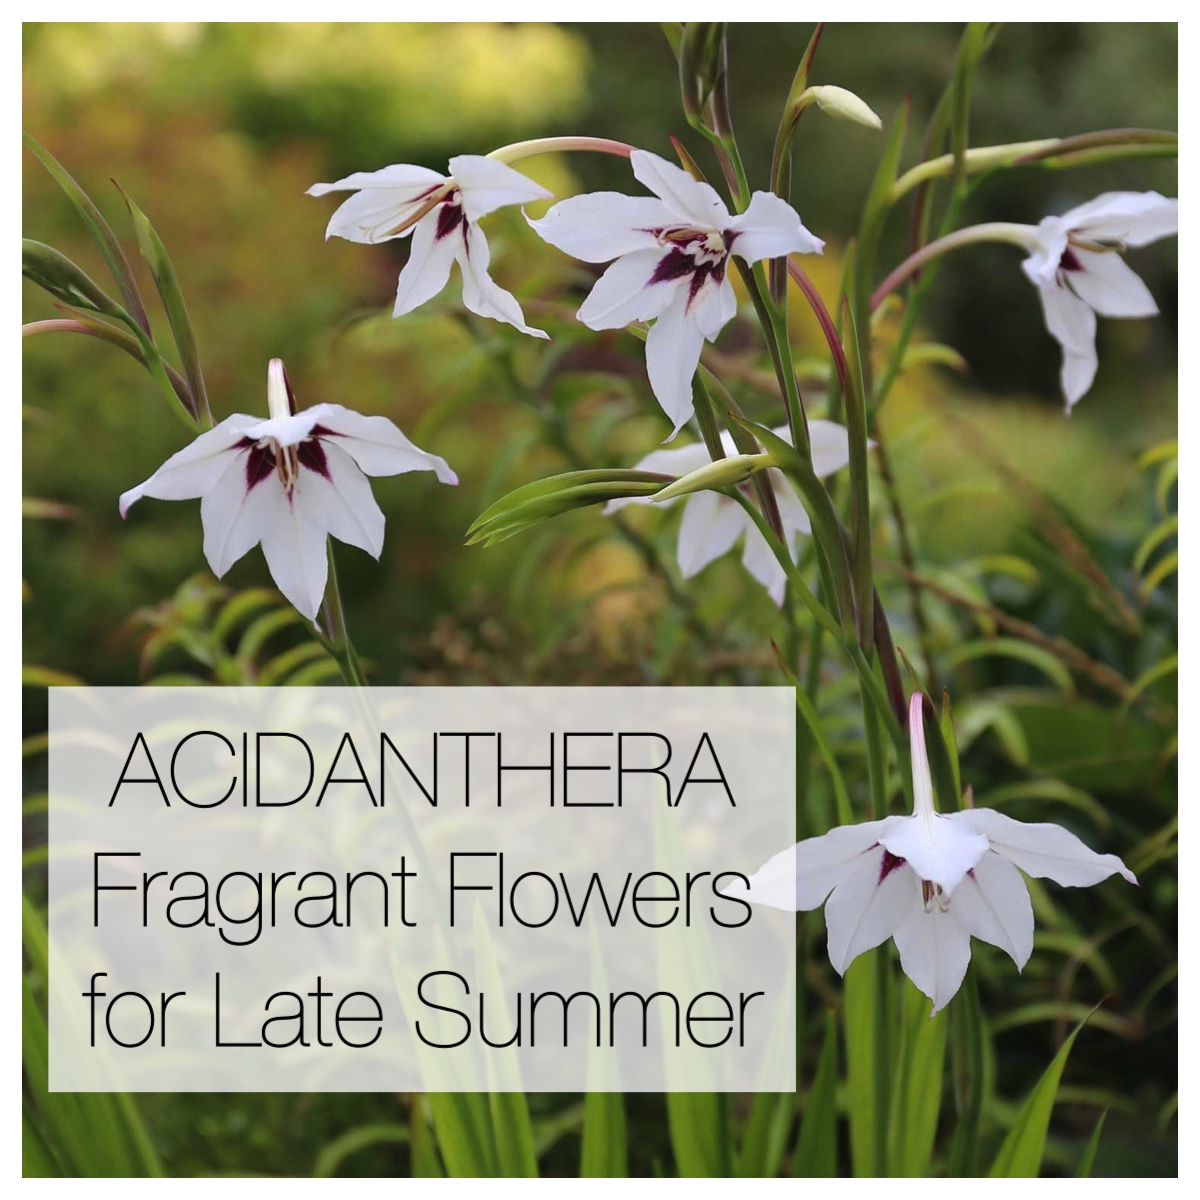 Acidanthera fragrant flowers for late summer - Longfield Gardens